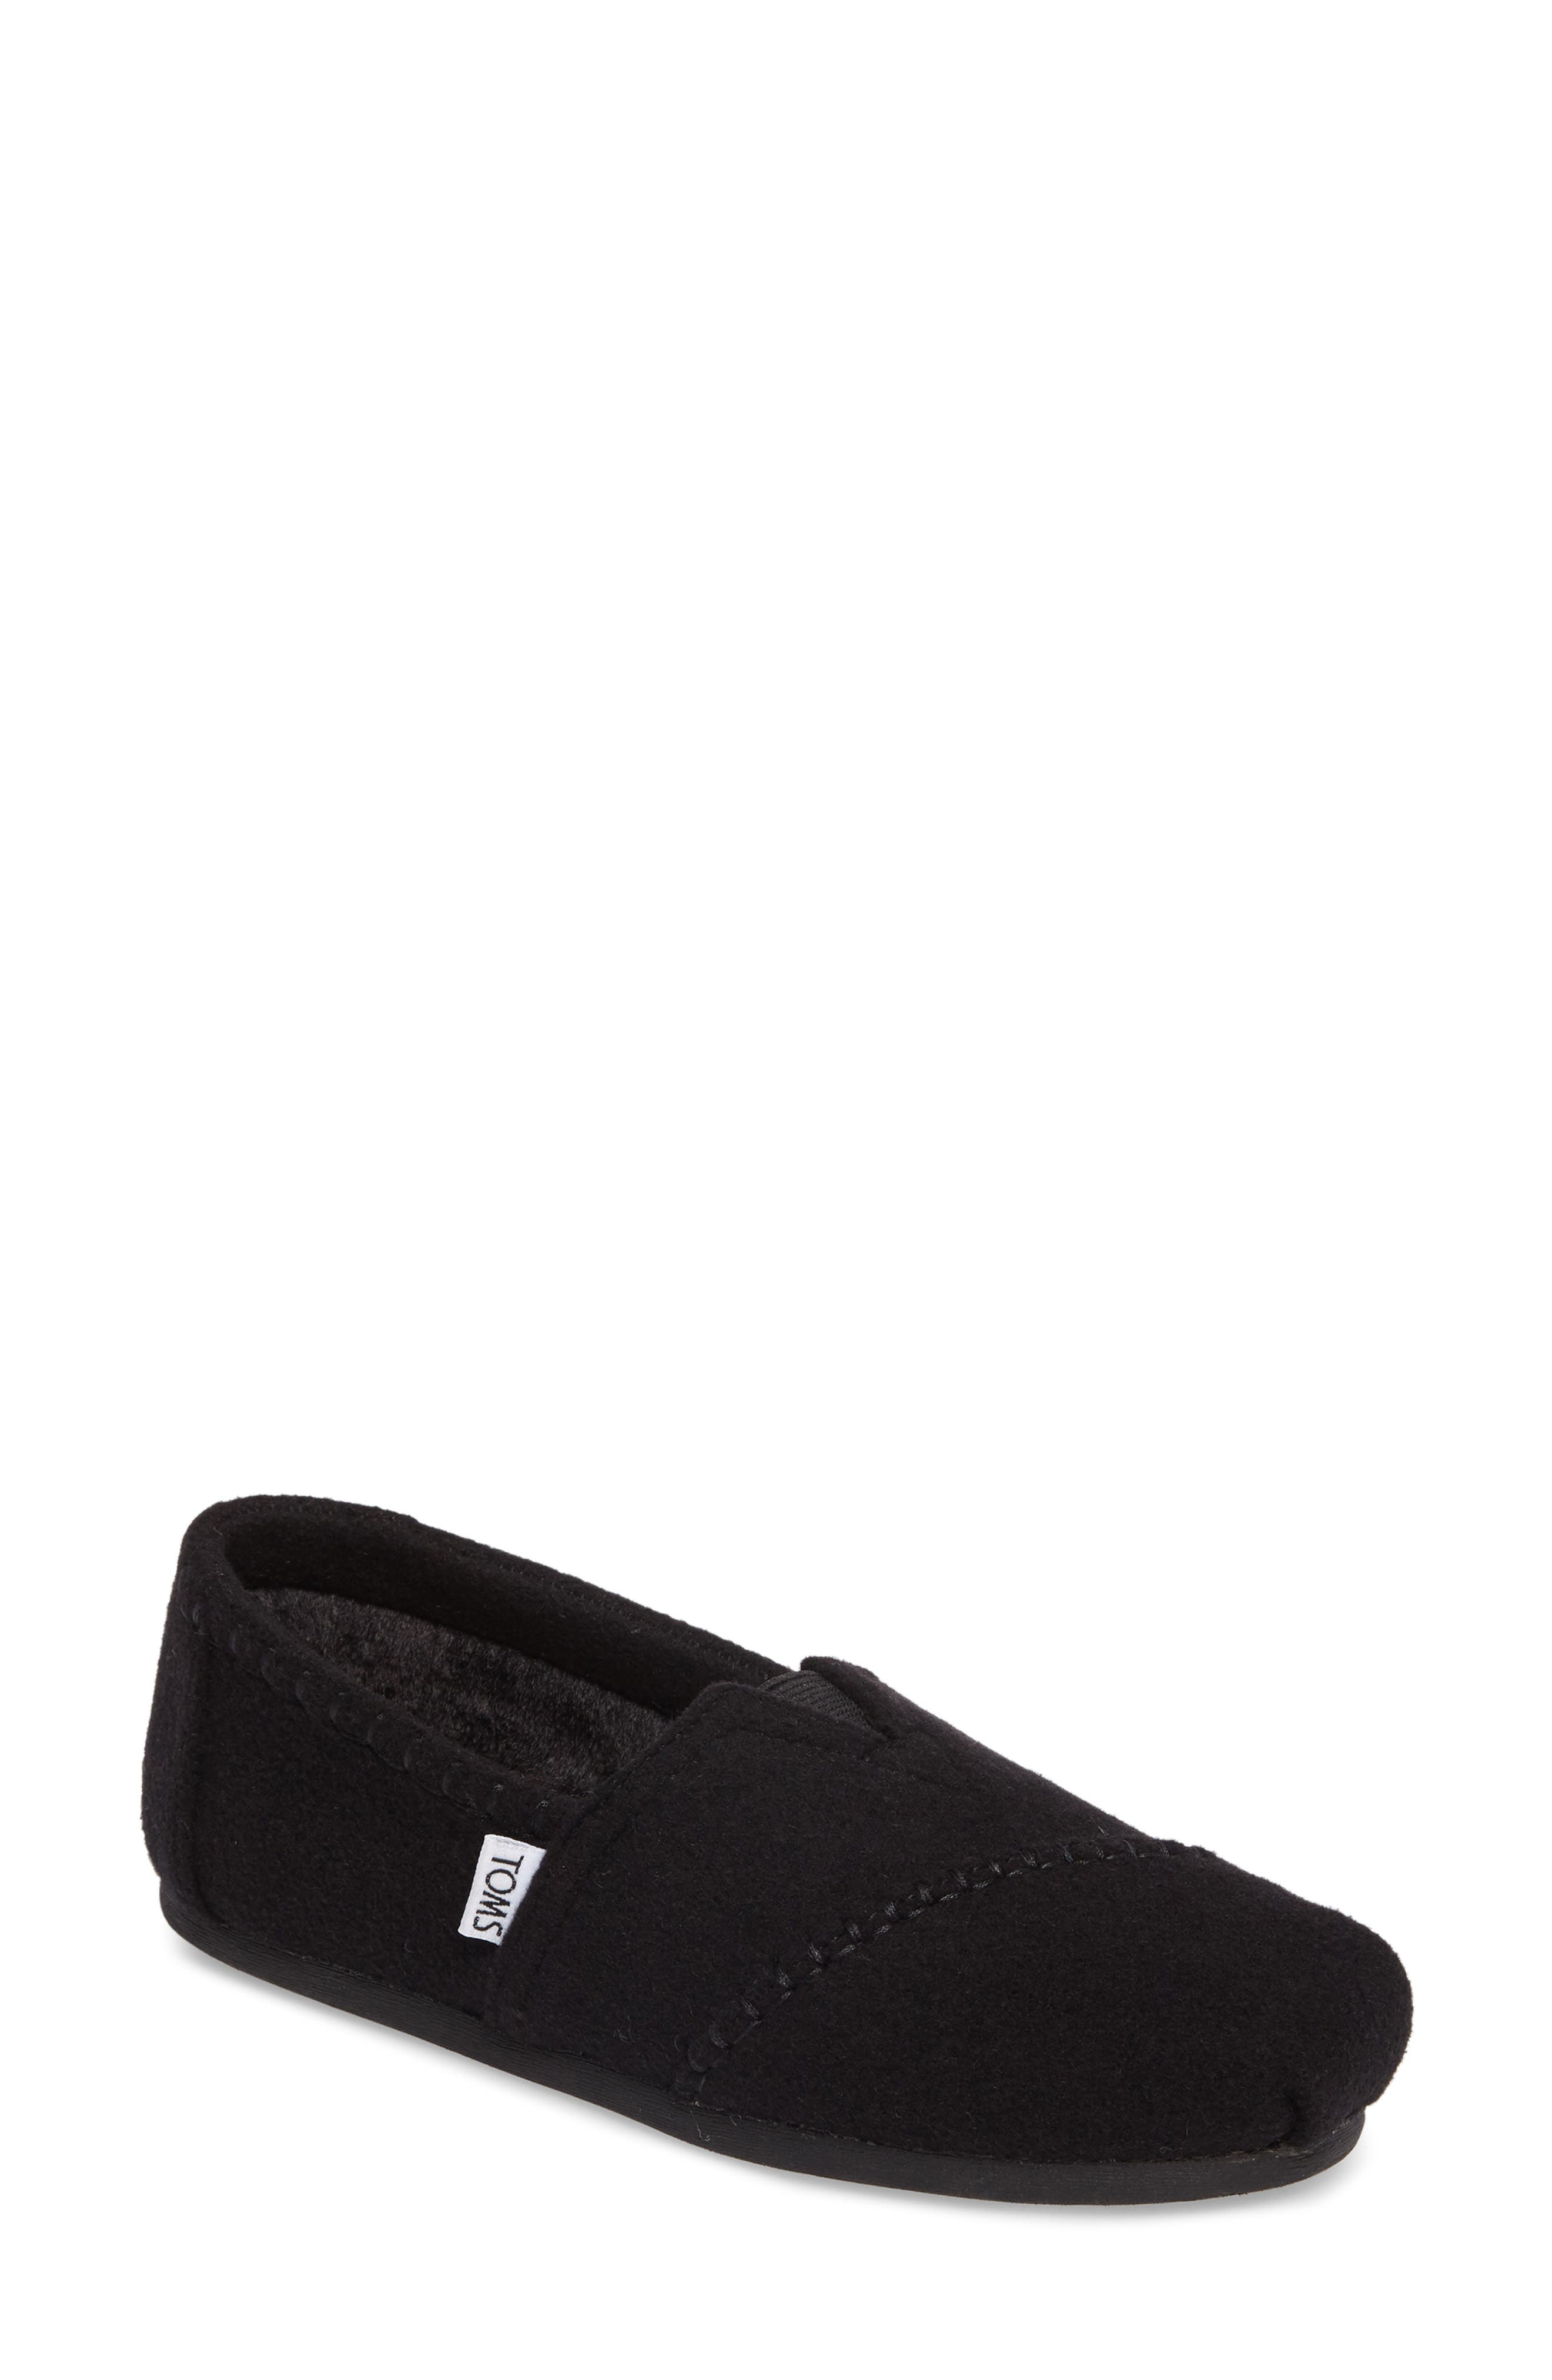 'Classic Knit' Slip-On,                         Main,                         color,